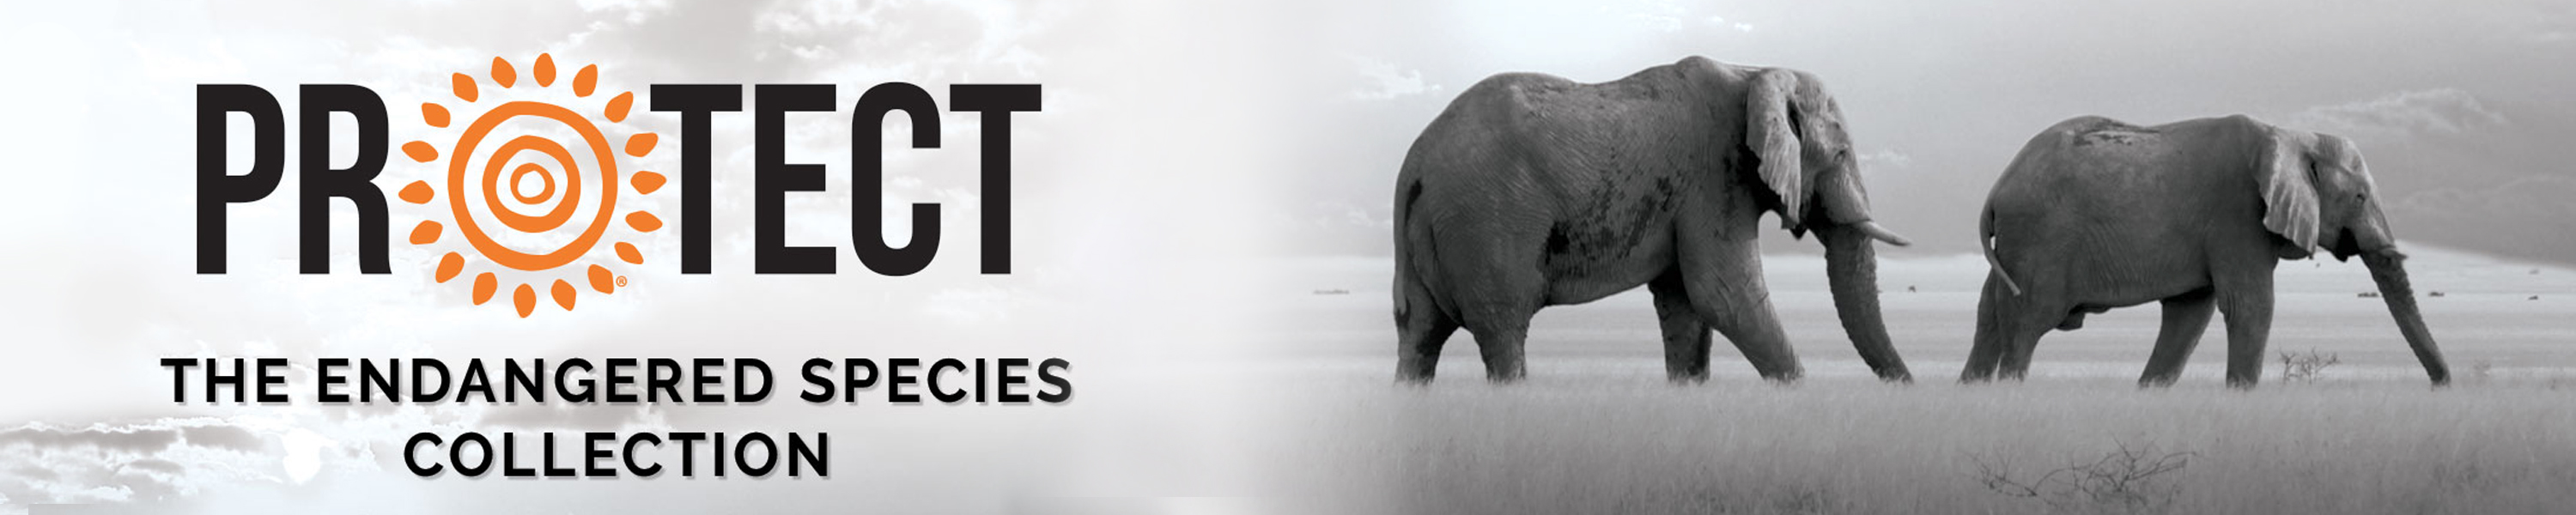 Protect Endangered Species Category Banner